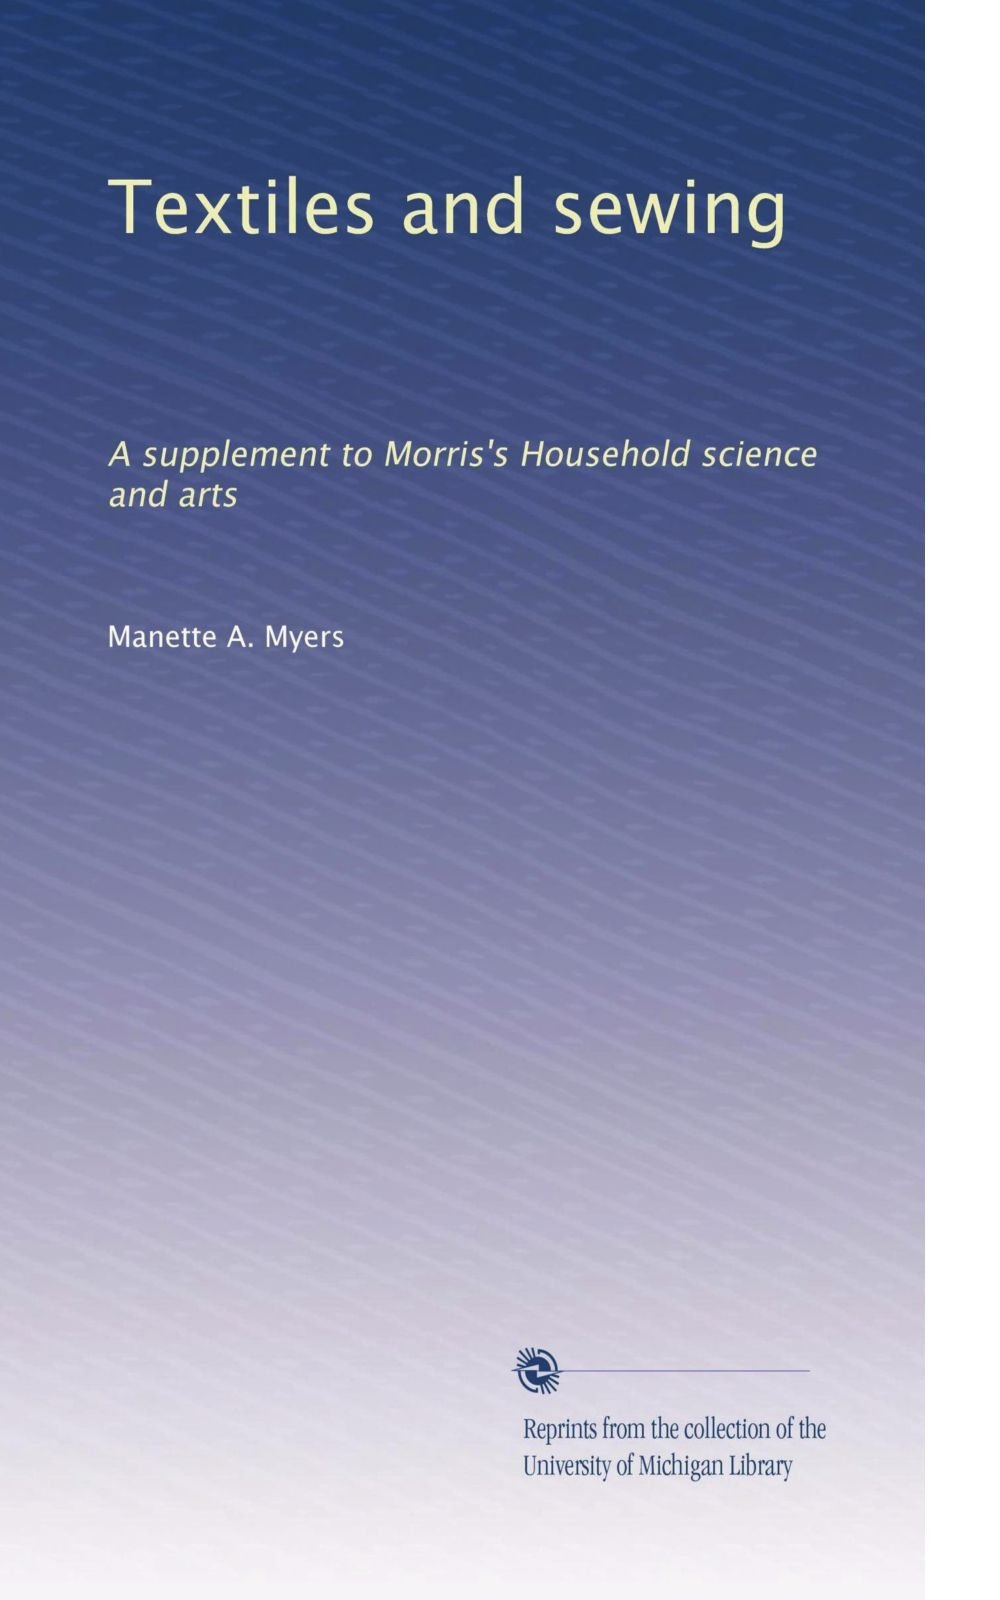 Textiles and sewing: A supplement to Morris's Household science and arts ebook